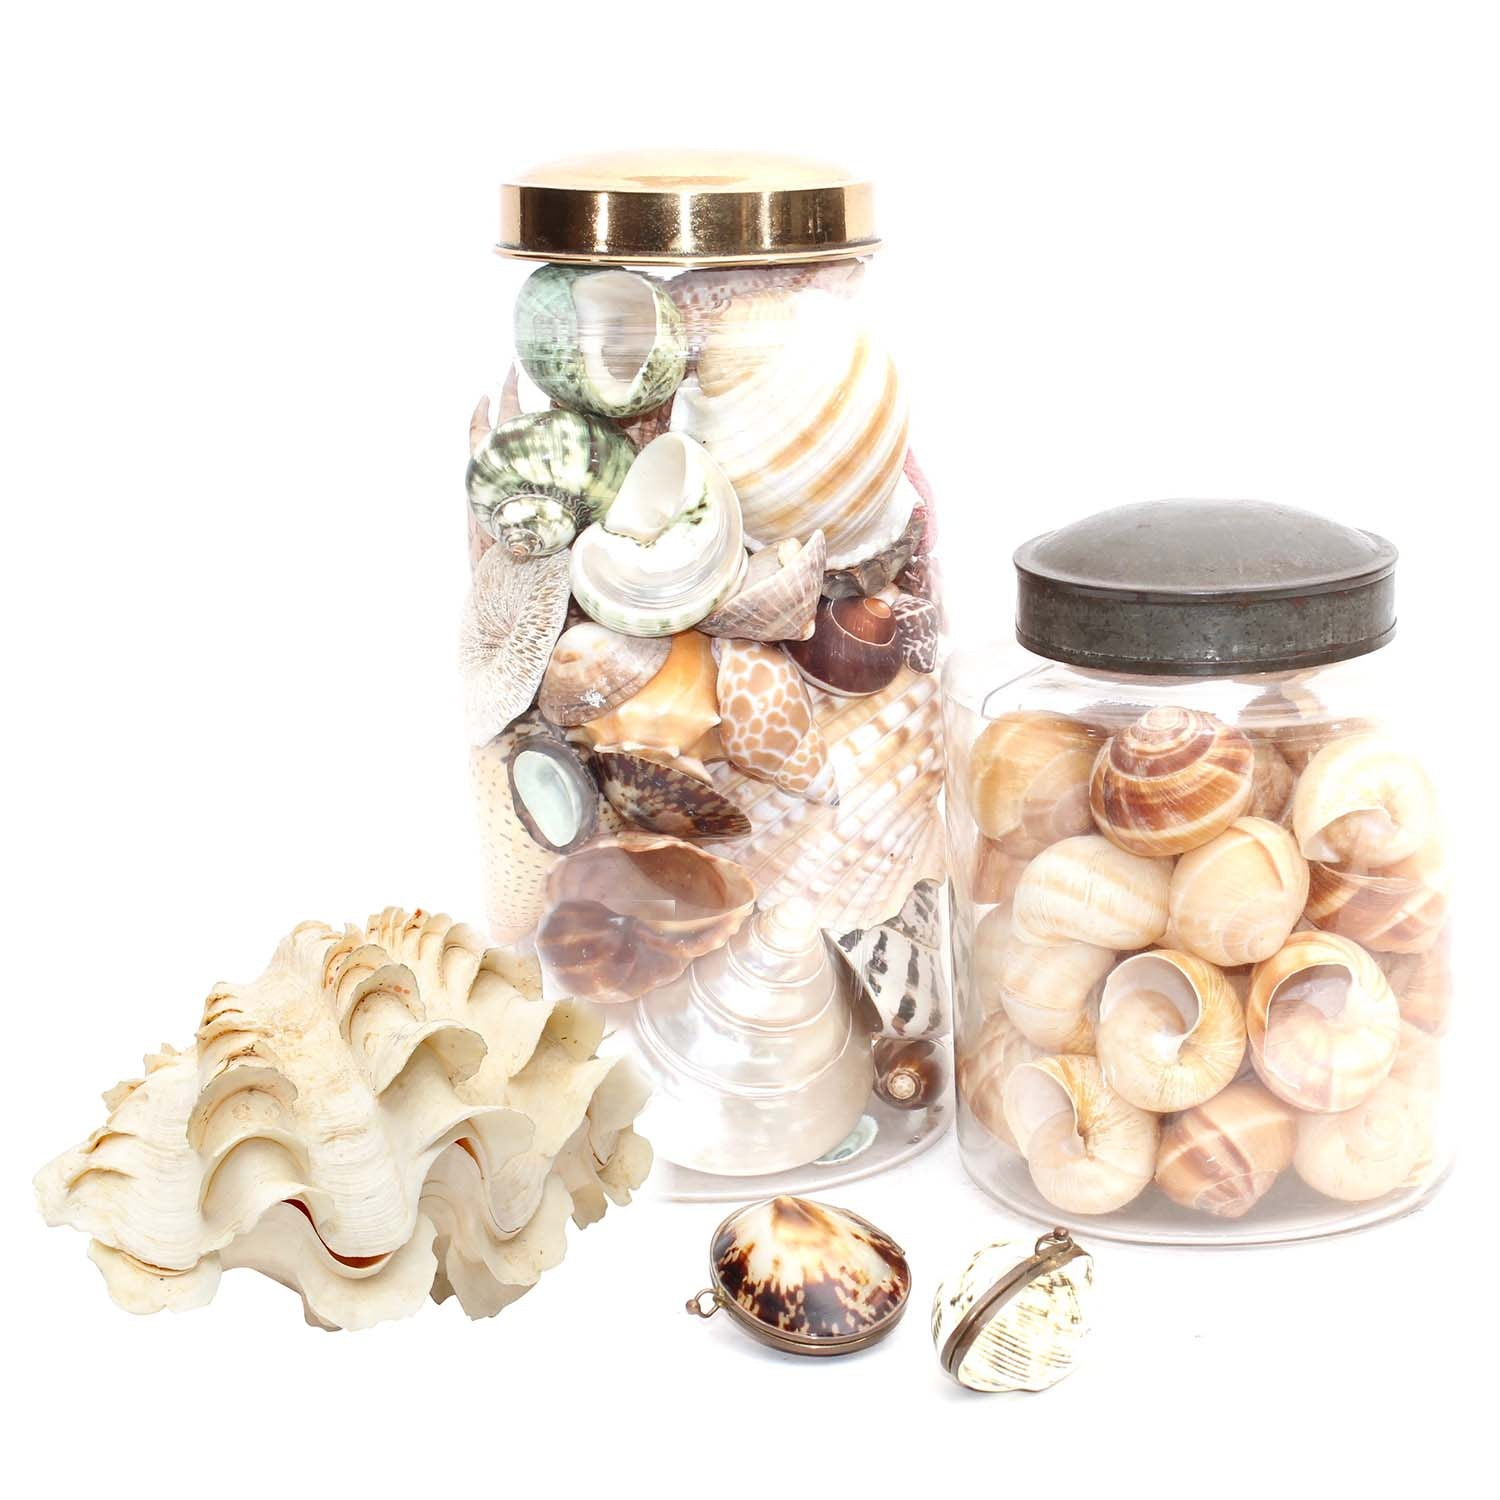 Shell Trinket Boxes with Brass Closures, and Shells in Glass Jars